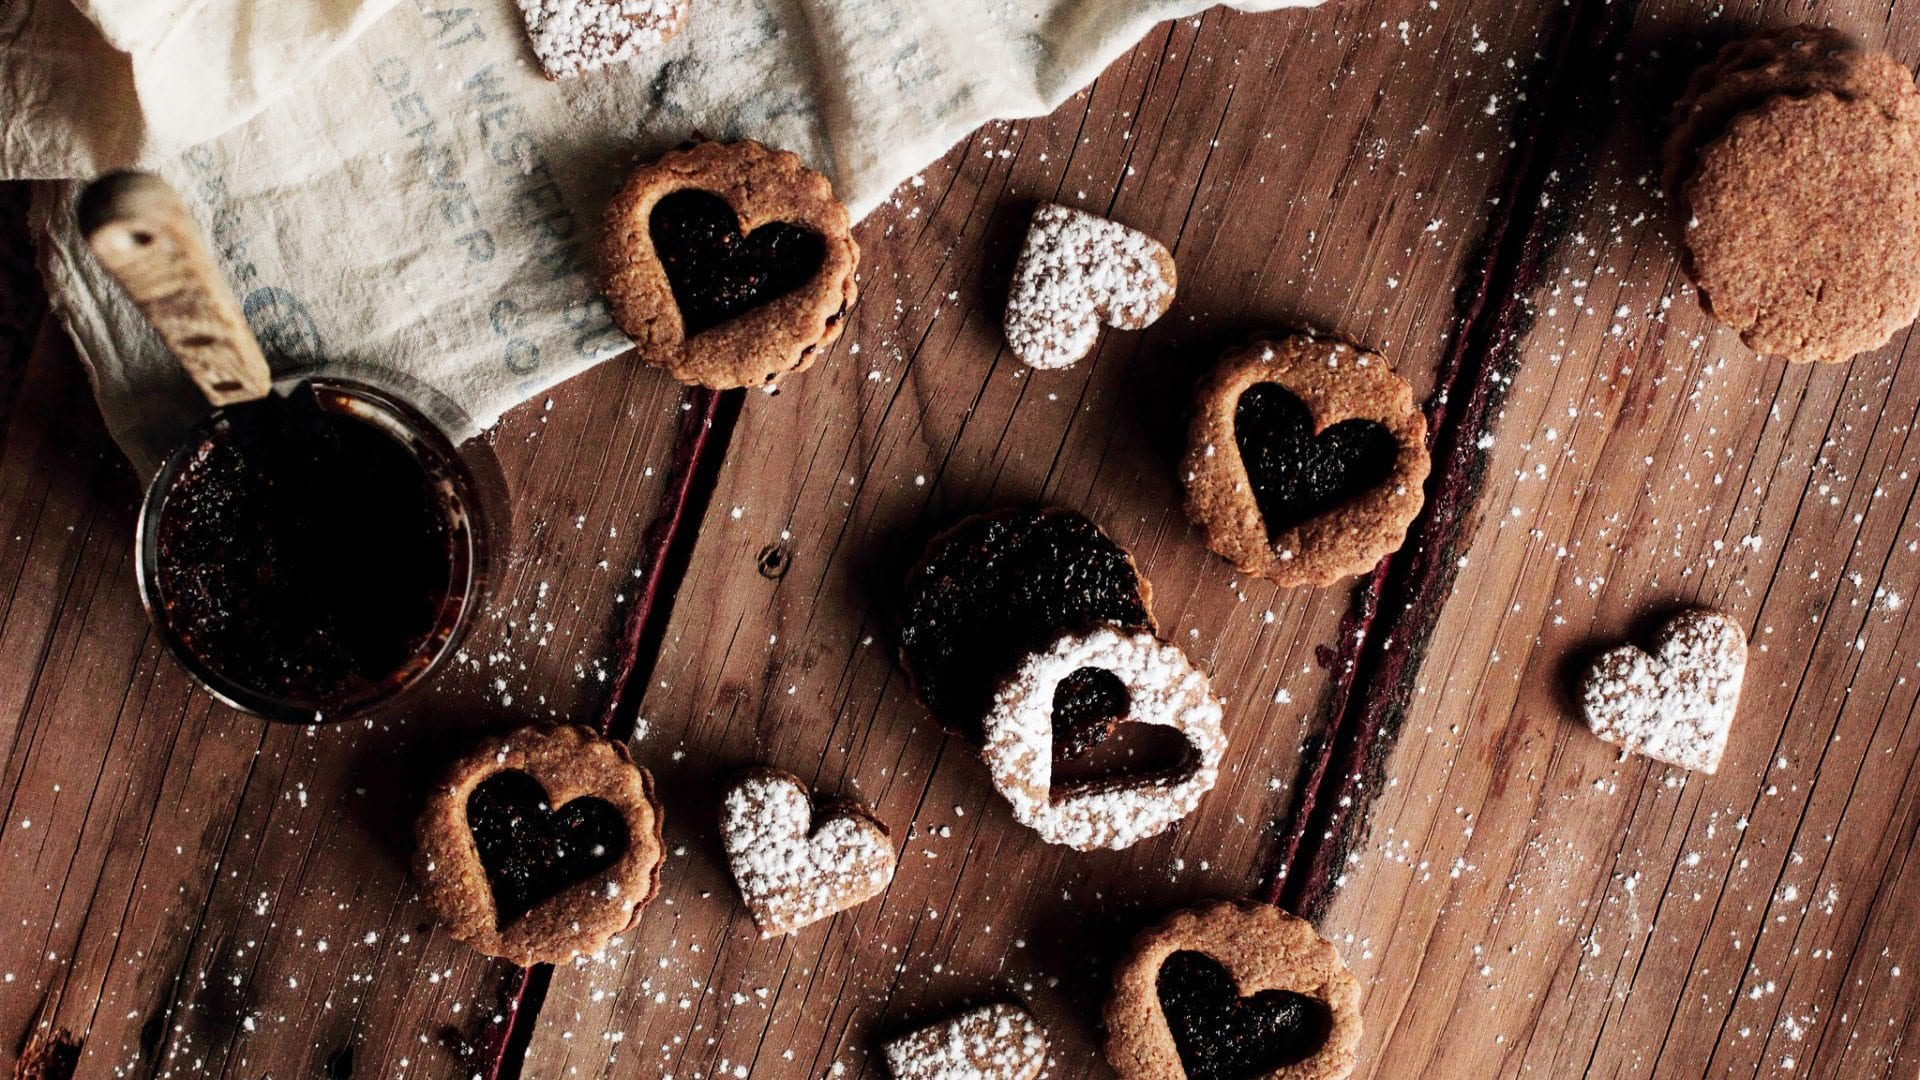 heart-shaped-cookies-19502-1920x1080